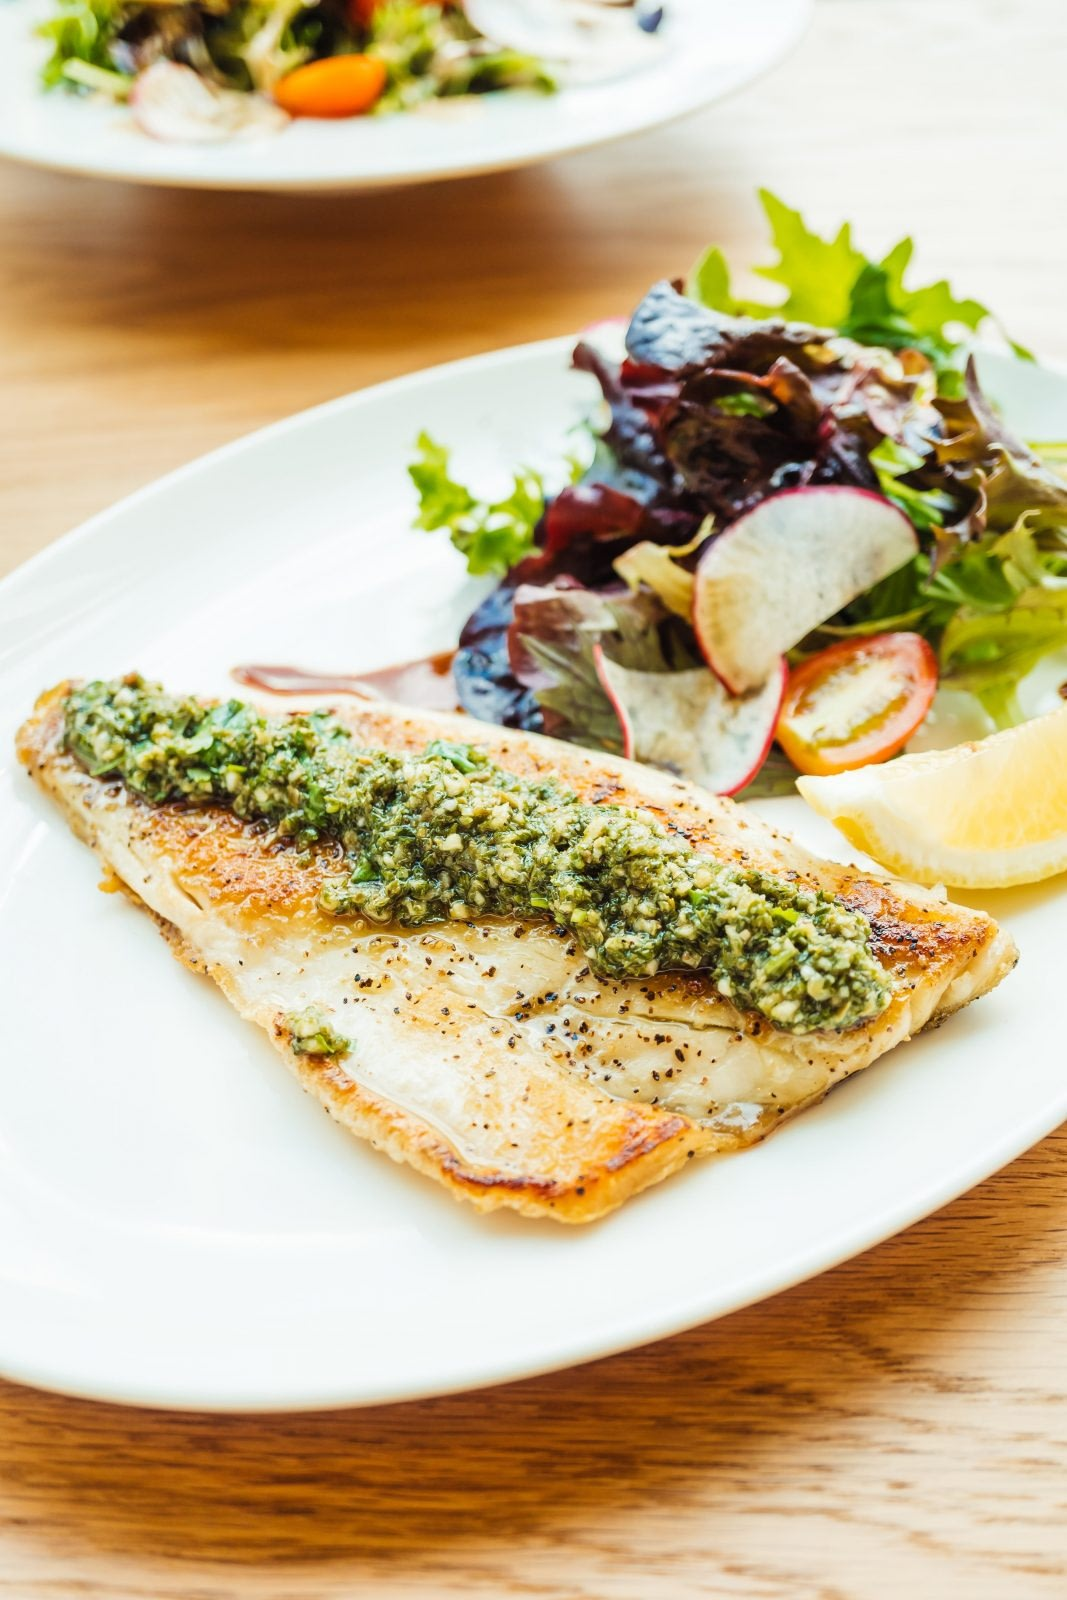 Grilled fish with pesto sauce with a side of vegetables